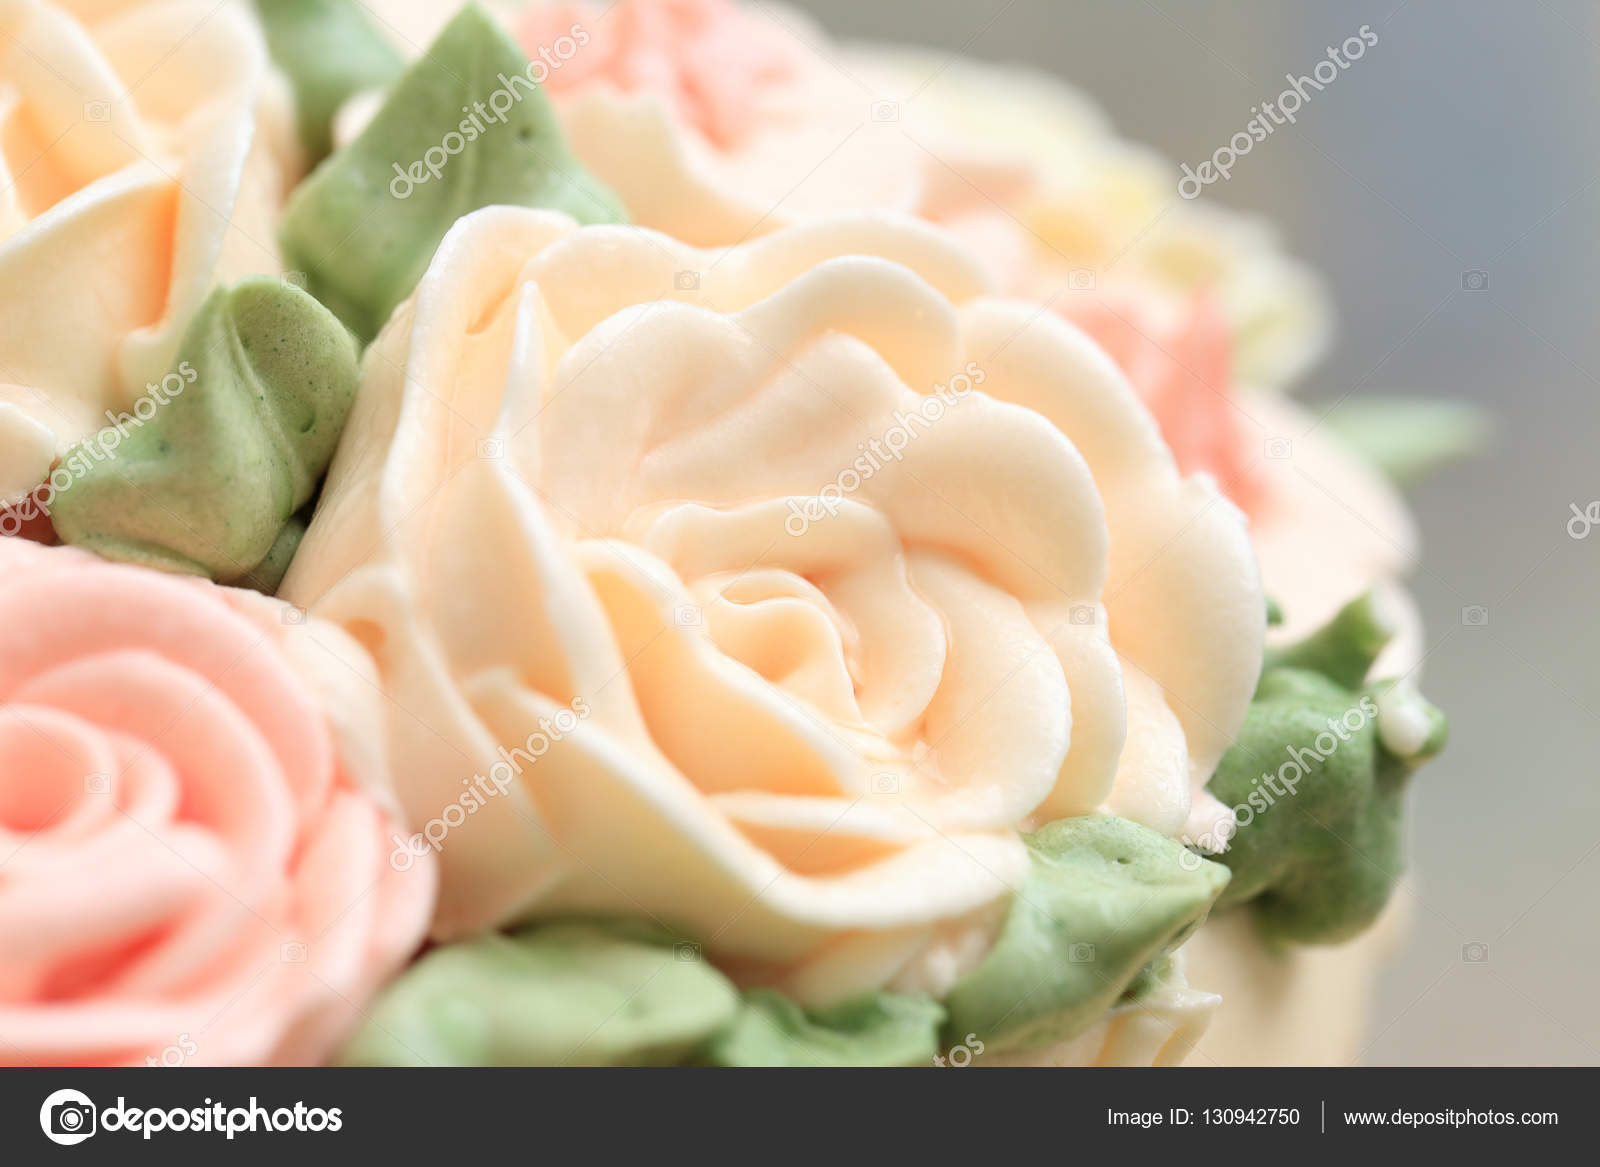 Close Up Of Flowers Made From Cream On Wedding Or Birthday Cake Photo By Enrouteksm